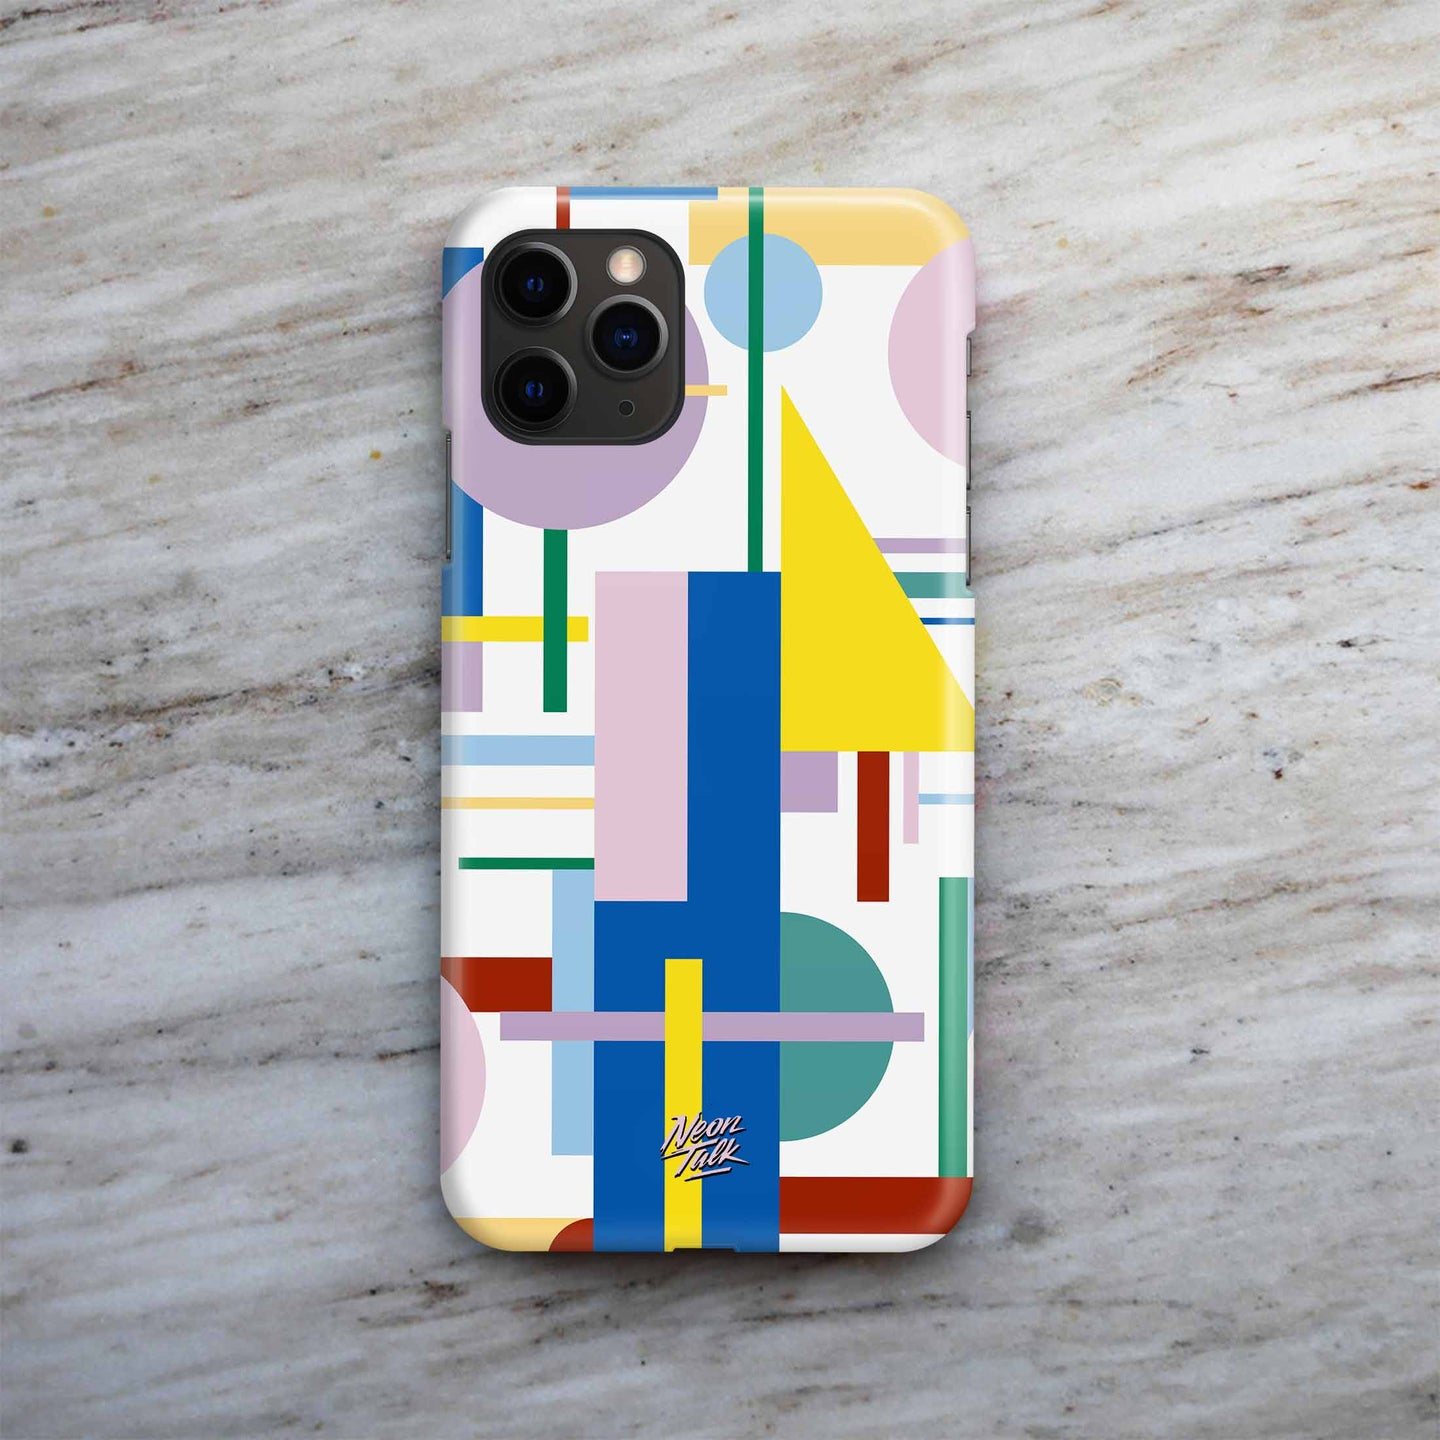 Lined Up Phone Case by Ana de Santons Díaz